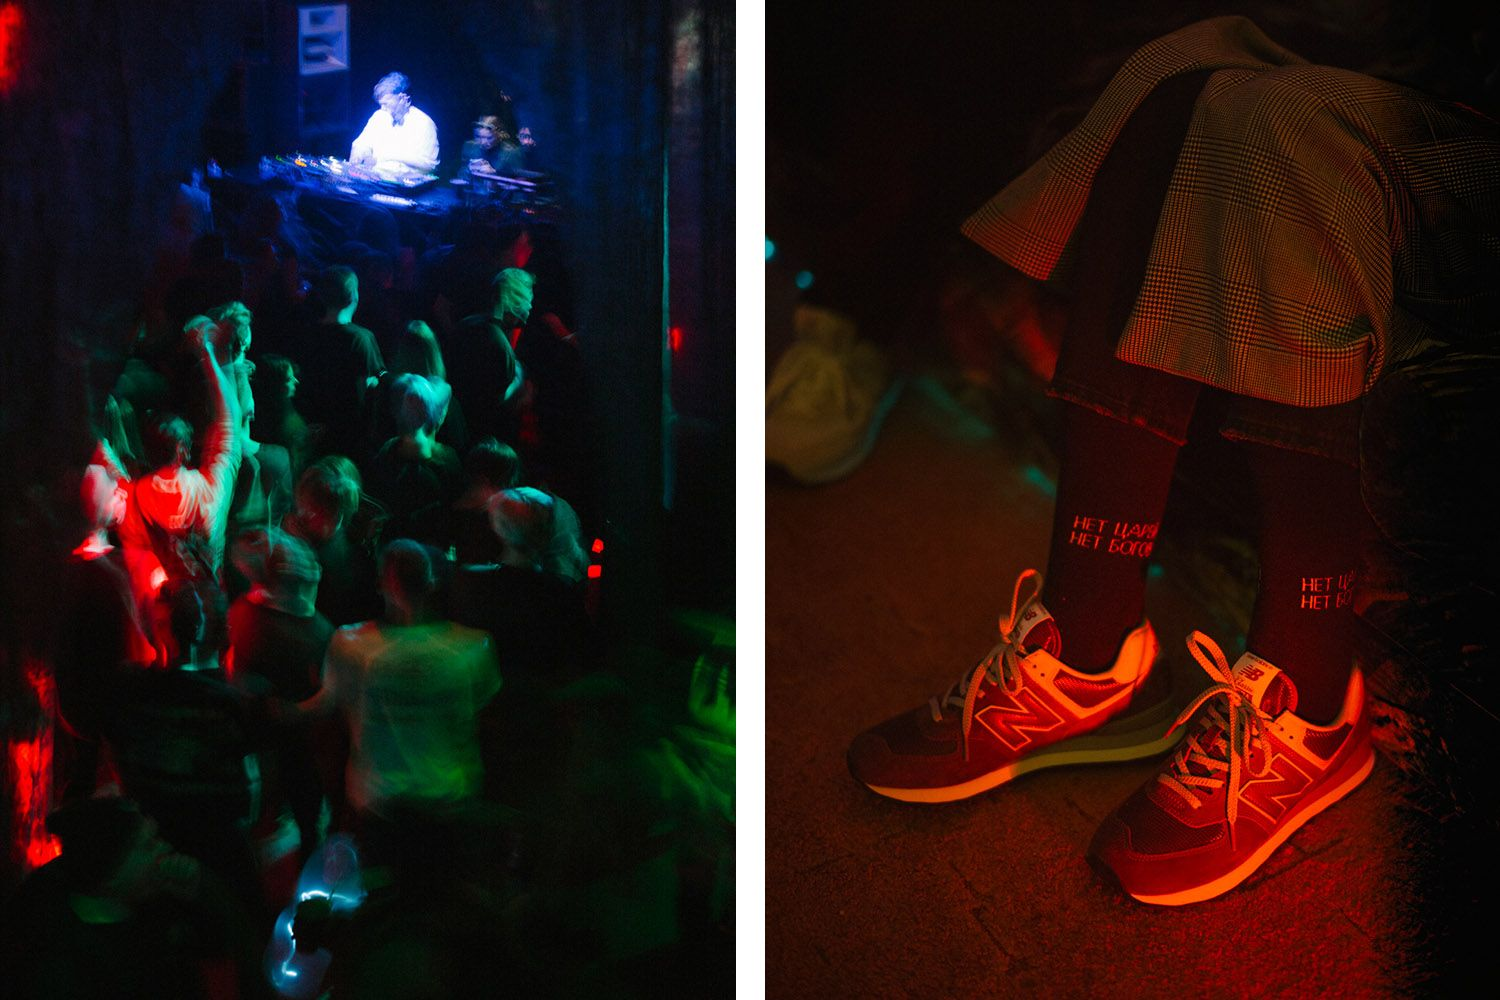 low priced 16120 5baac Exploring Russia's '90s Rave Culture With the New Balance 574